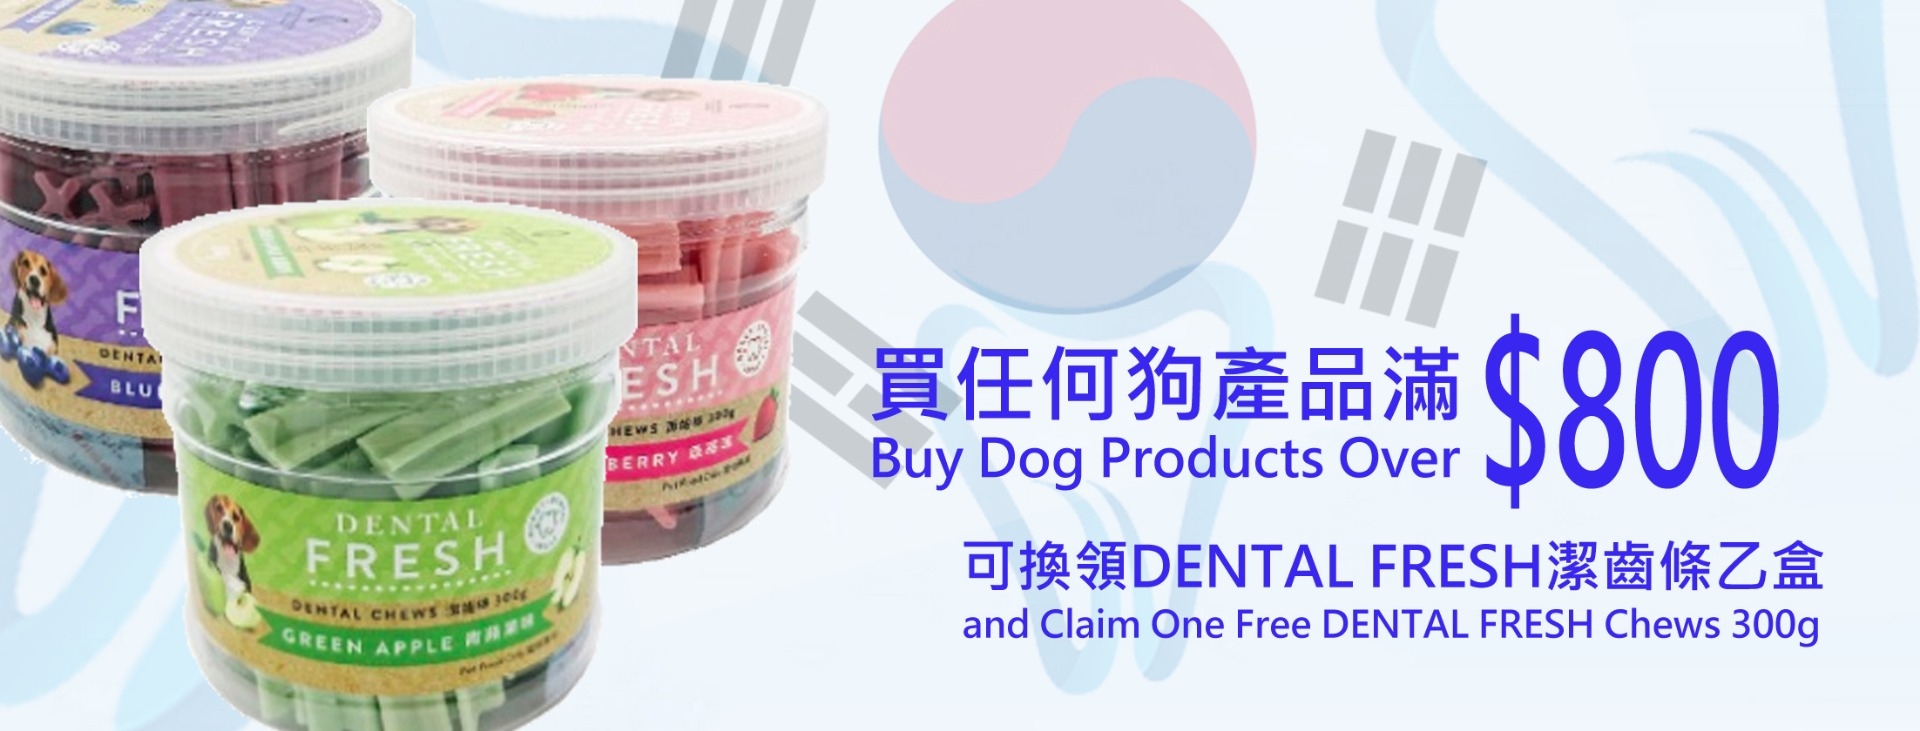 Claim a Free Dental Fresh - Dog Dental Treats